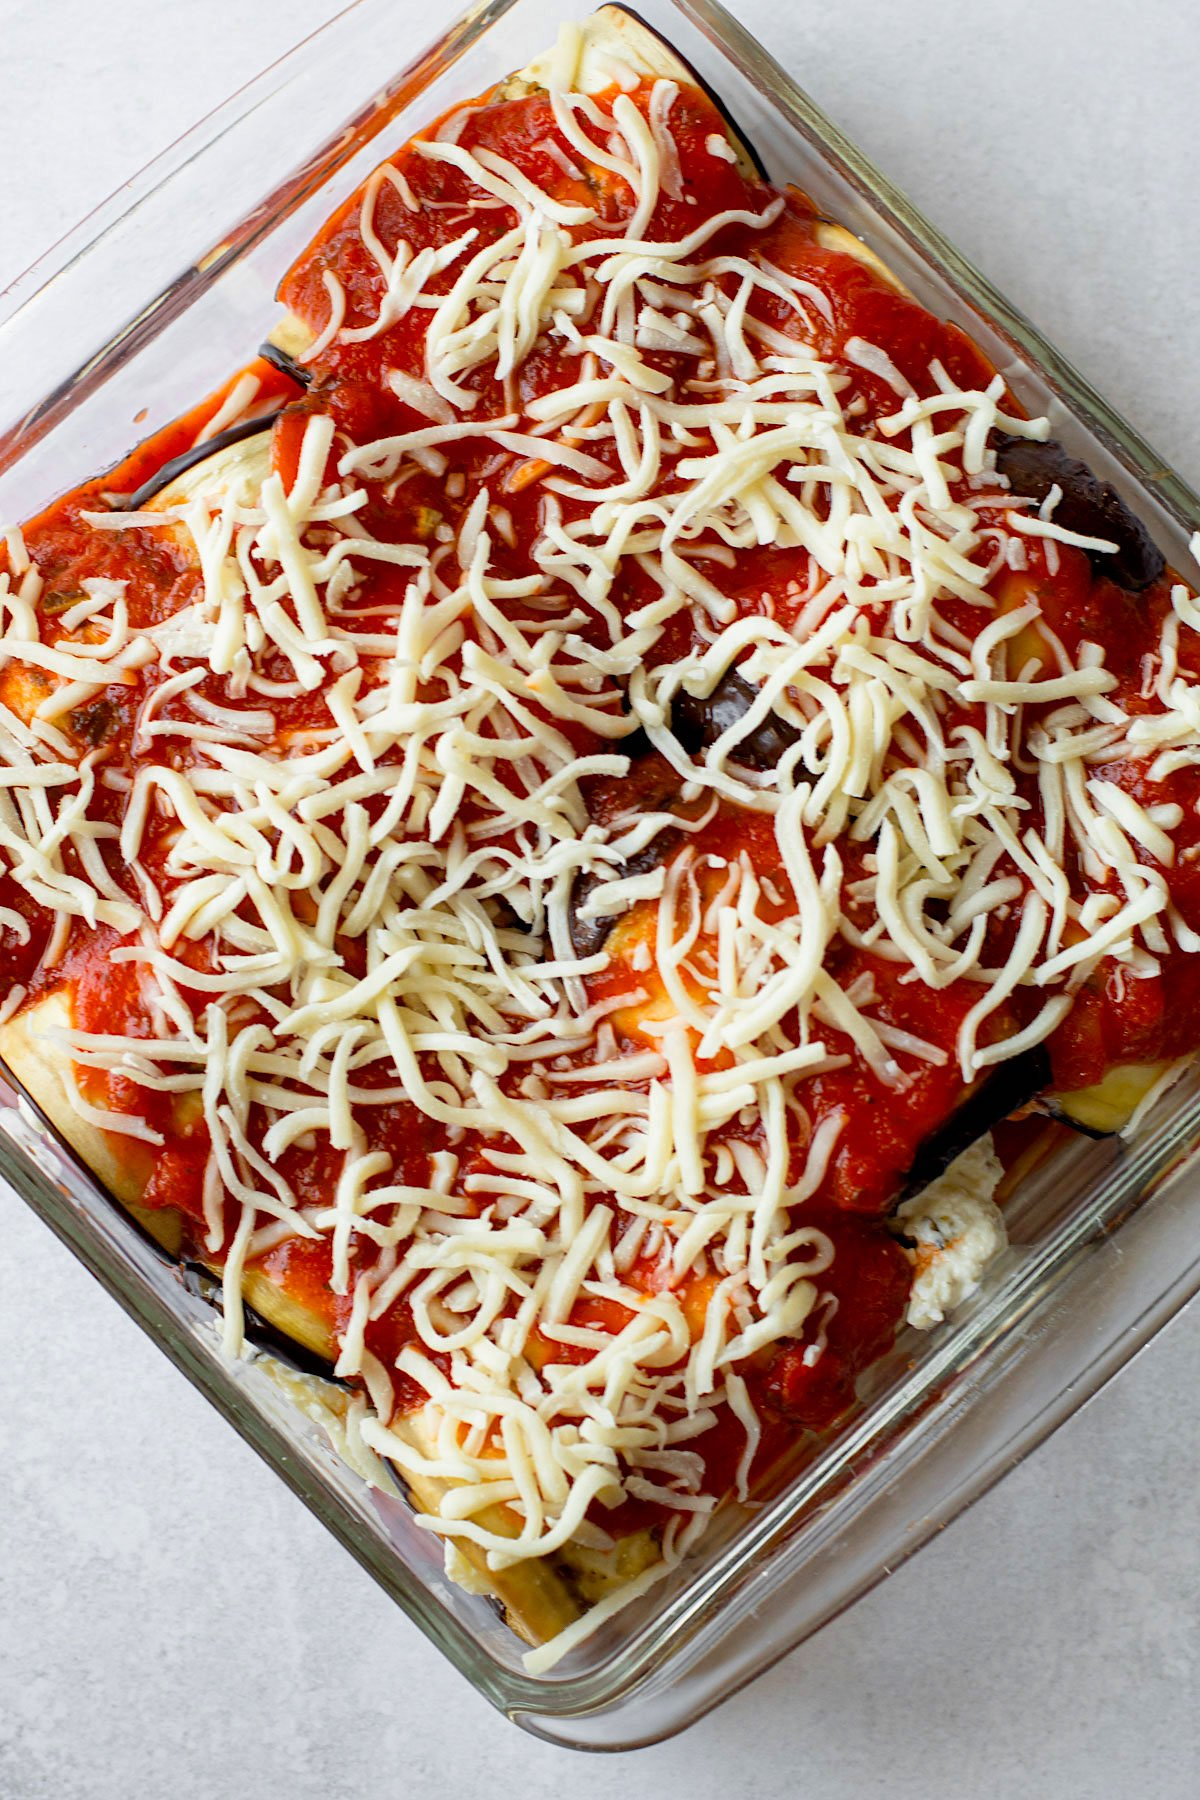 Eggplant rollatini assembled, but not baked.